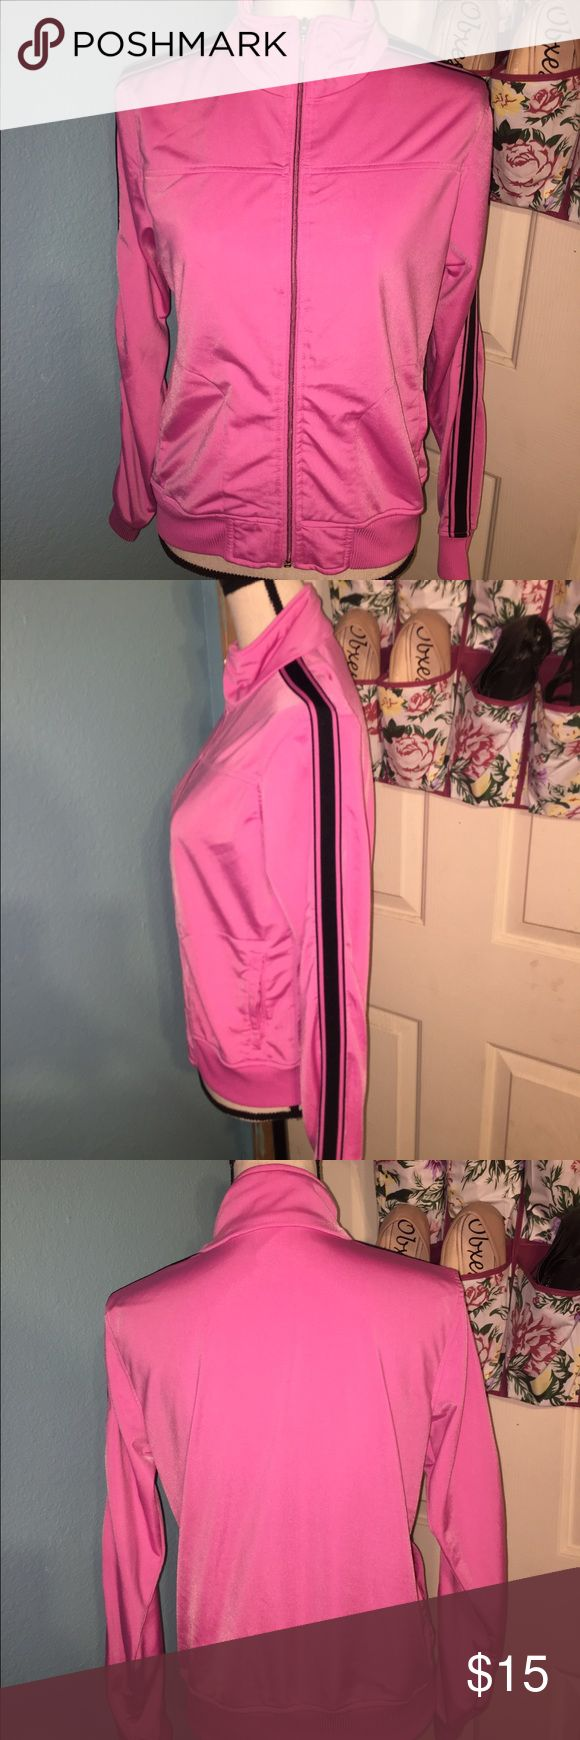 Women Footlocker Pink Sweater This is a pink and black sweater. It has been used but it is still in great condition. No flaws. FEEL FREE TO MAKE AN OFFER!!! (: Women Footlocker Sweaters